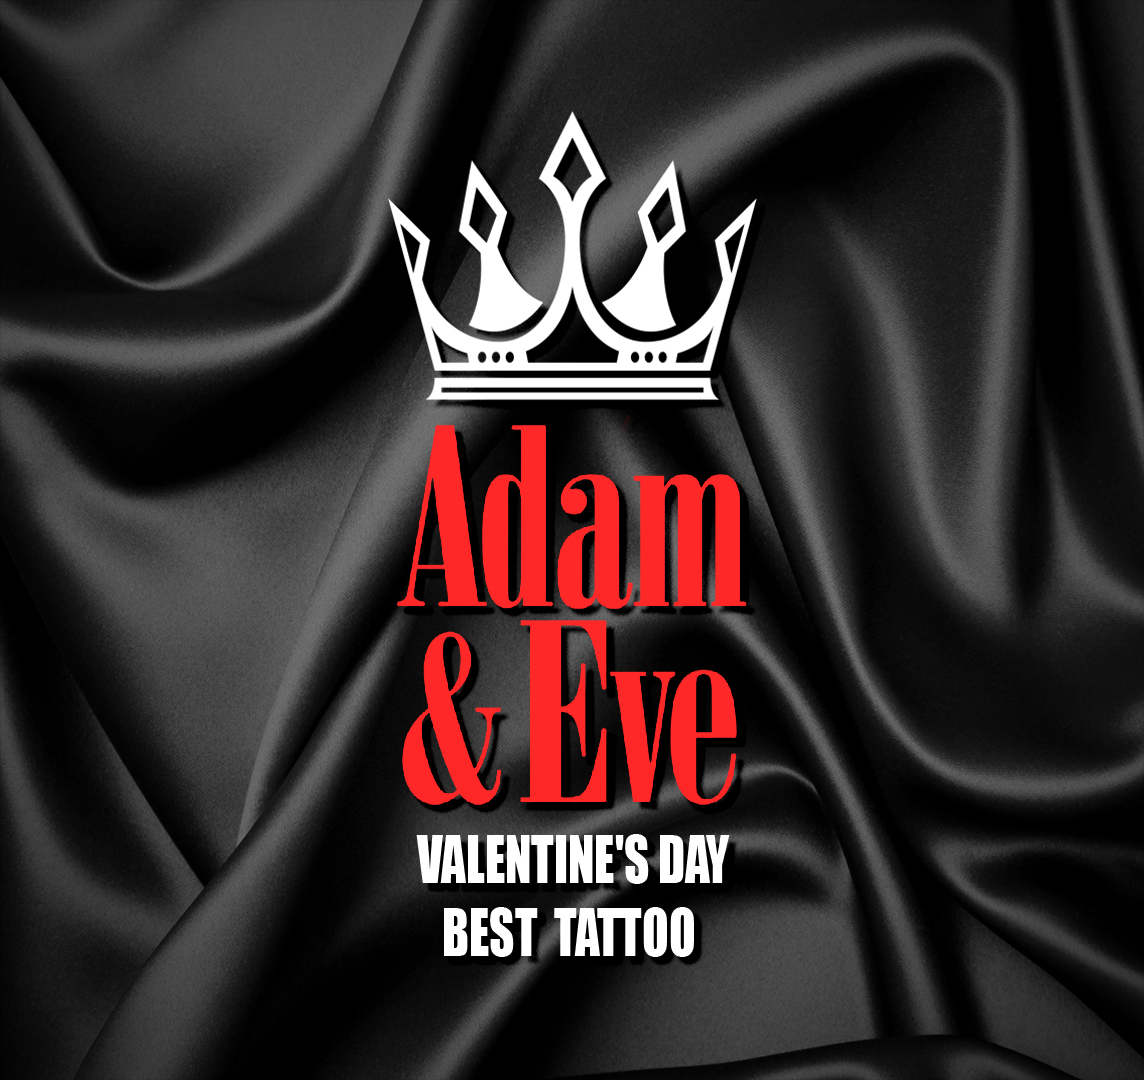 Adam and Eve | Tattoo Awards